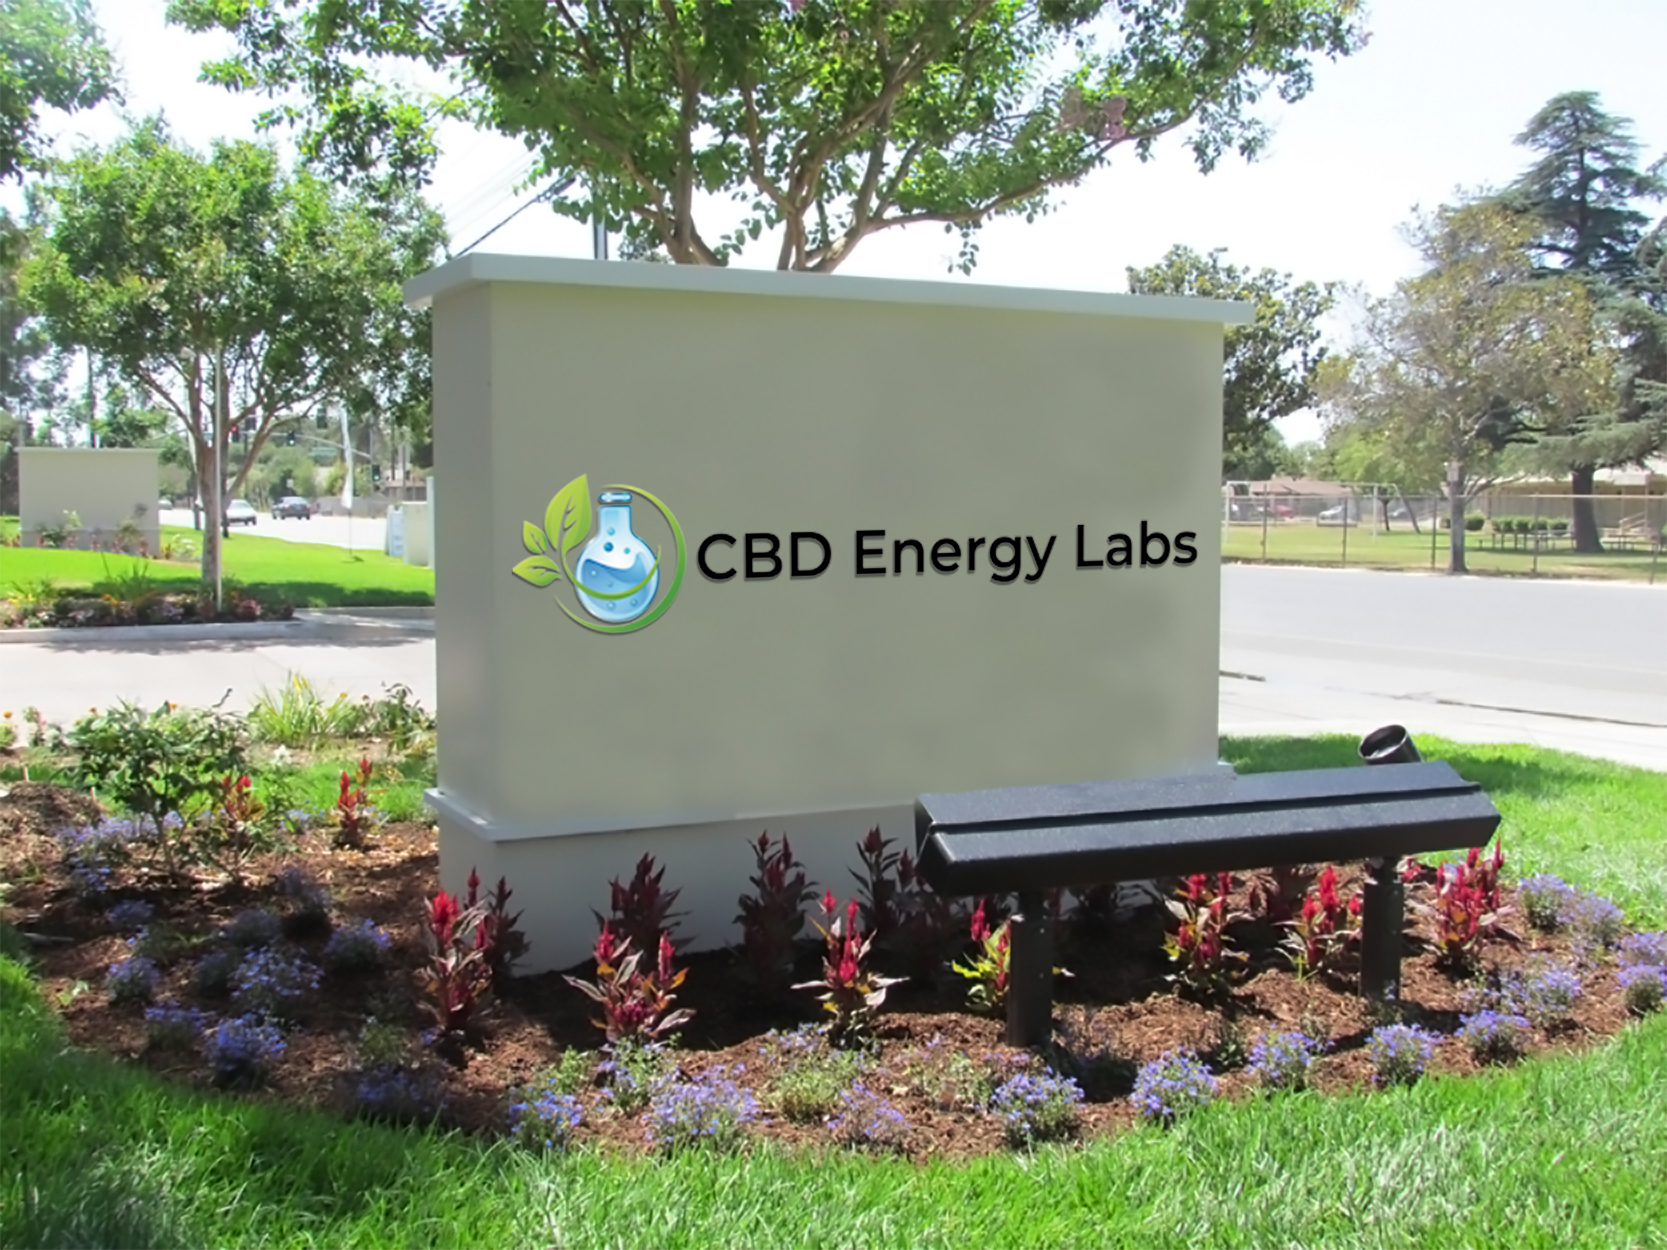 CBD Energy Labs